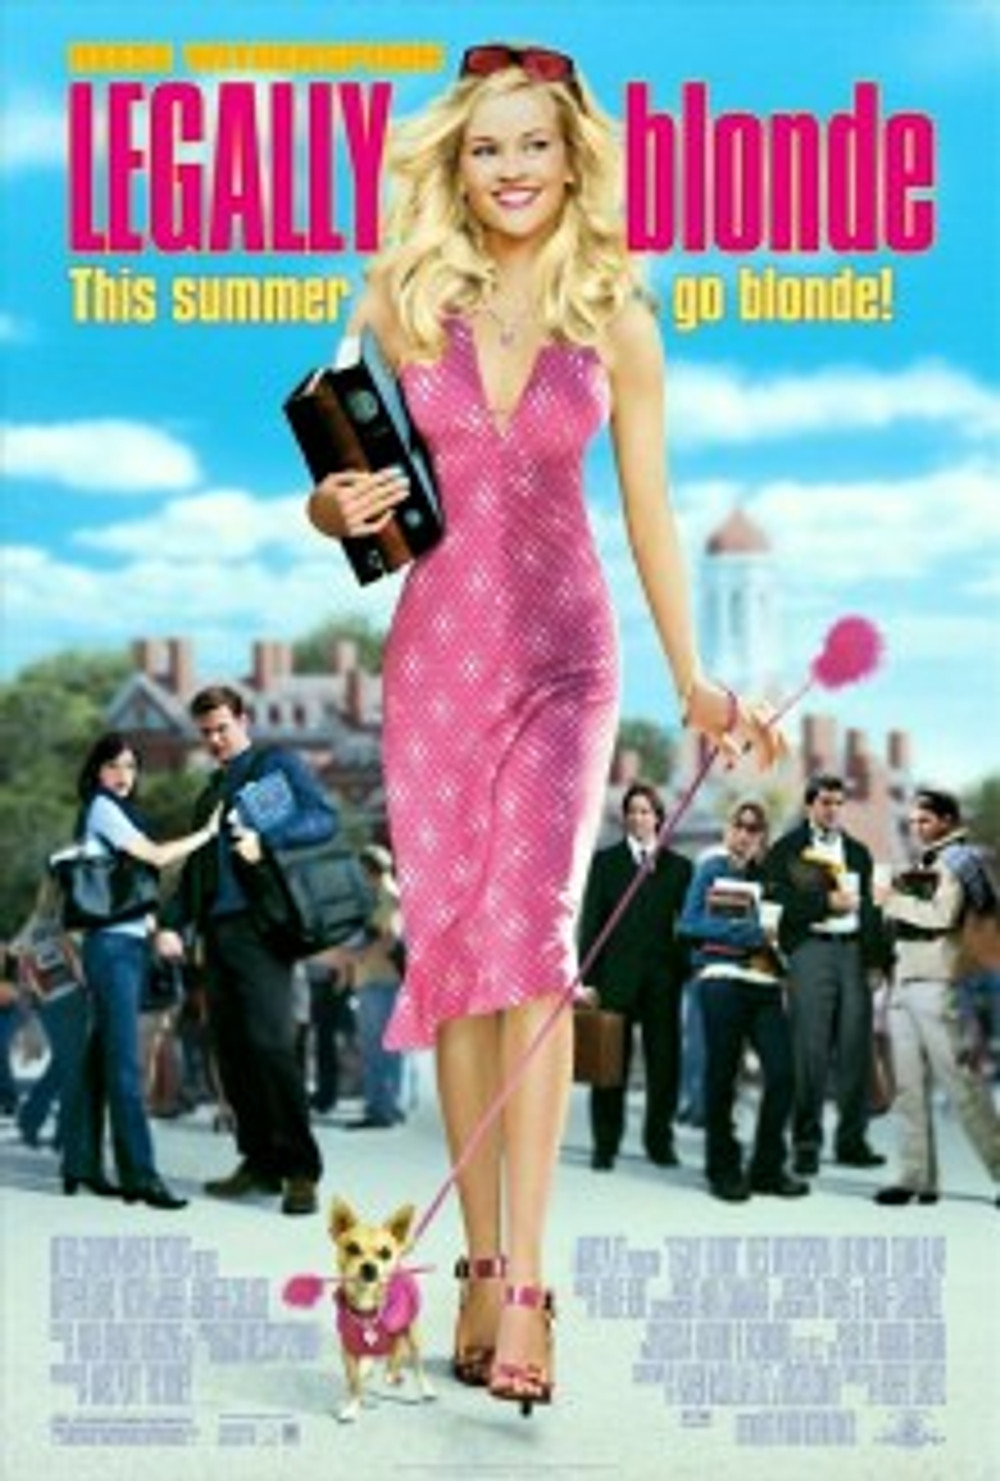 FILM2 Legally Blonde - DVD Cover - http---d12vb6dvkz909q.cloudfront.net-uploads-galleries-28741-legallyblondeposter.jpg